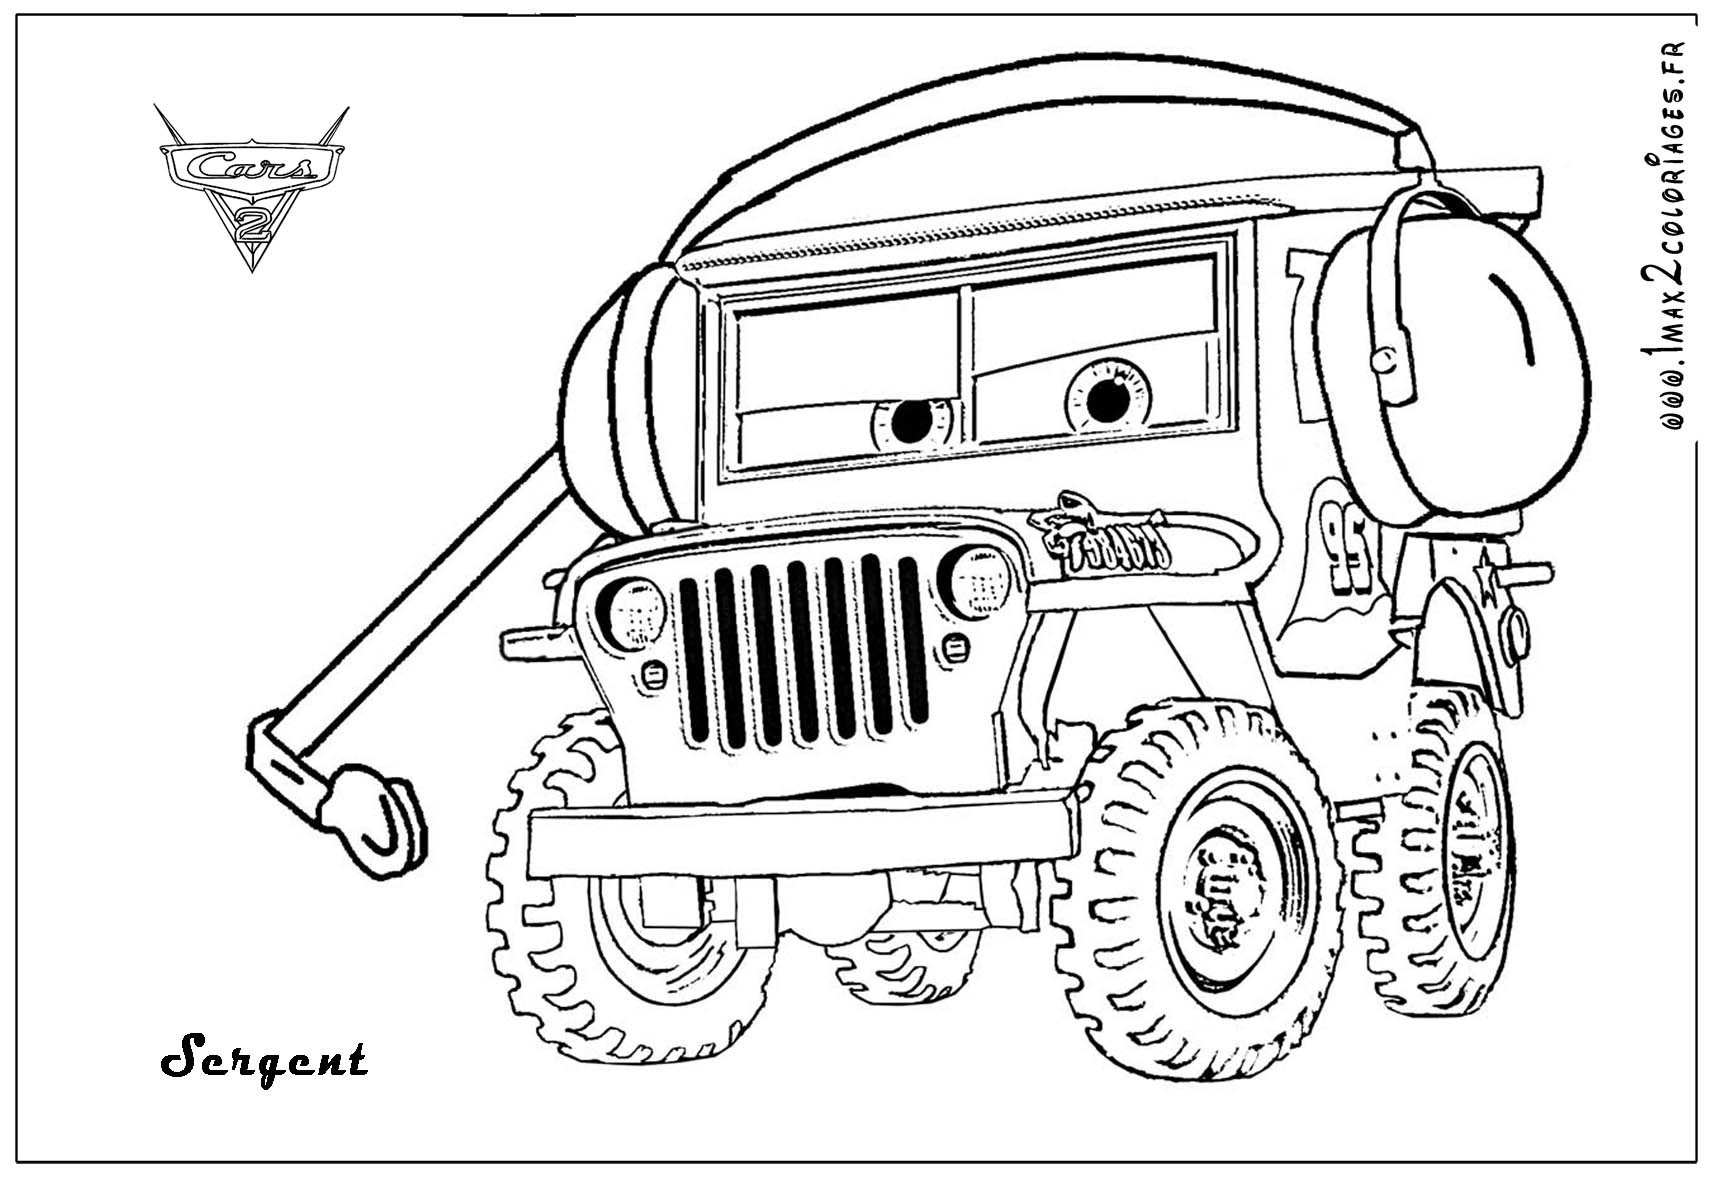 Sarge The World War Ii Jeep From The Movie Cars With His Headset On